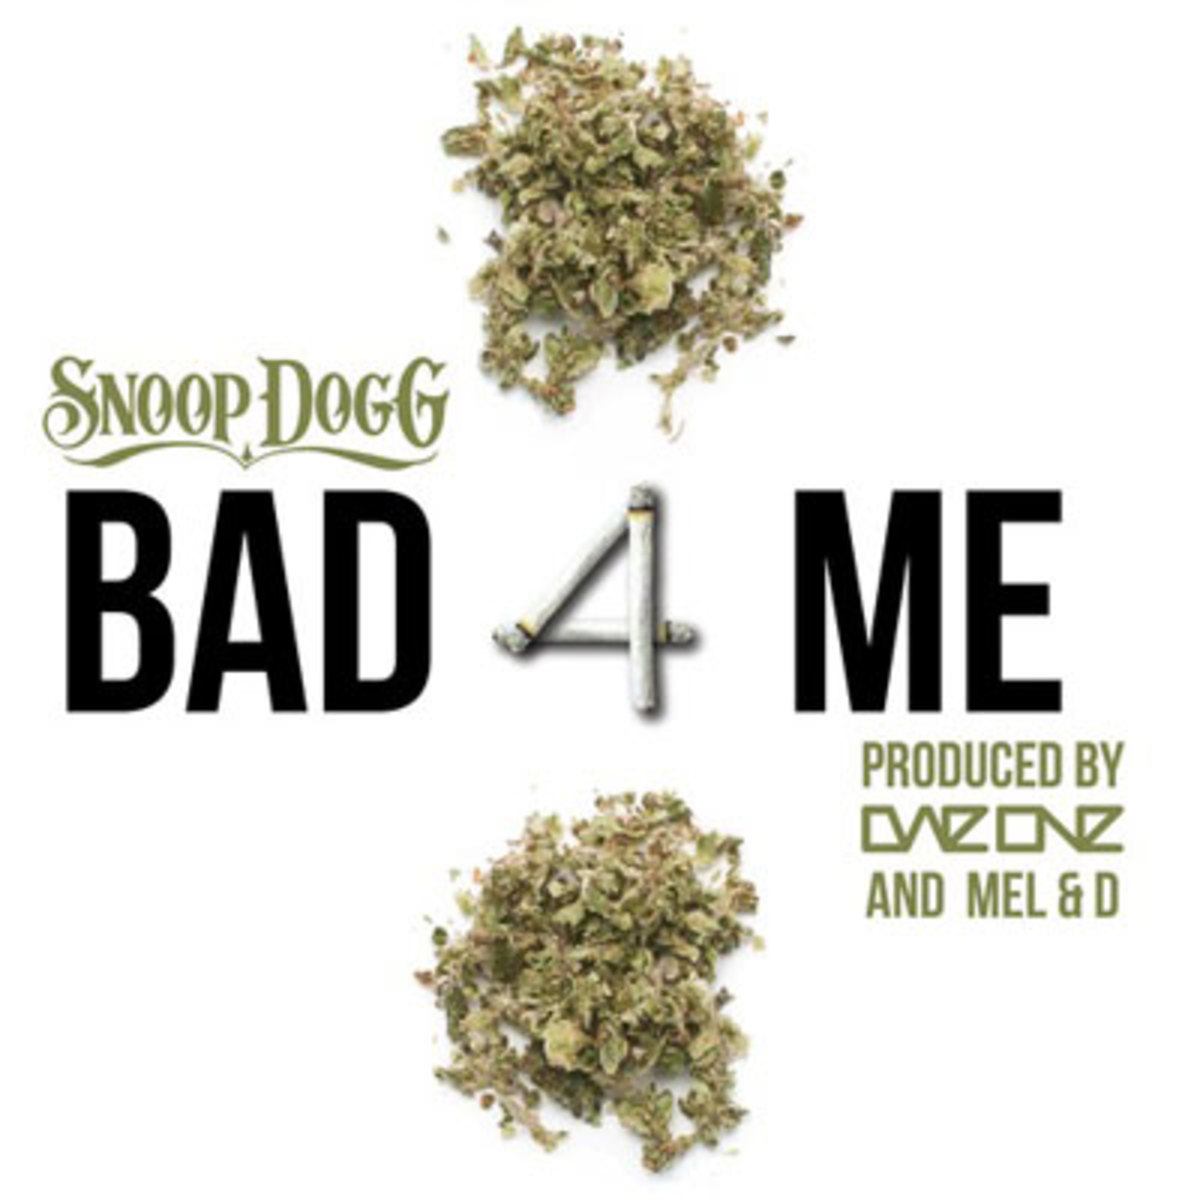 snoopdogg-bad4me.jpg